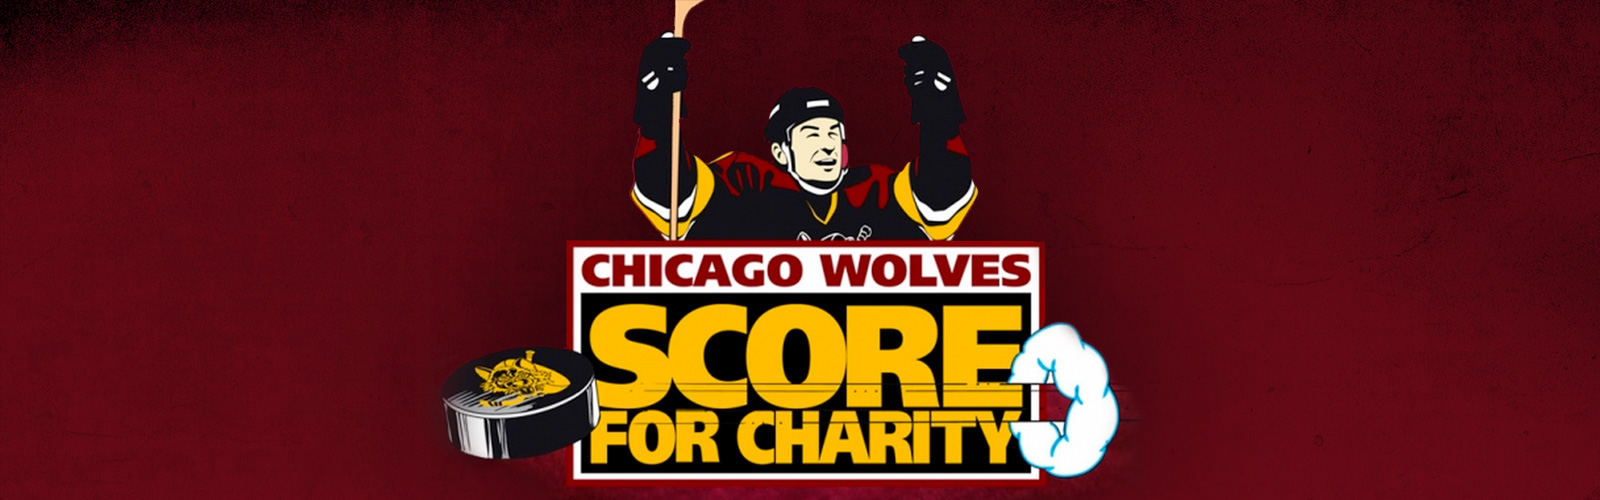 Chicago hockey charities